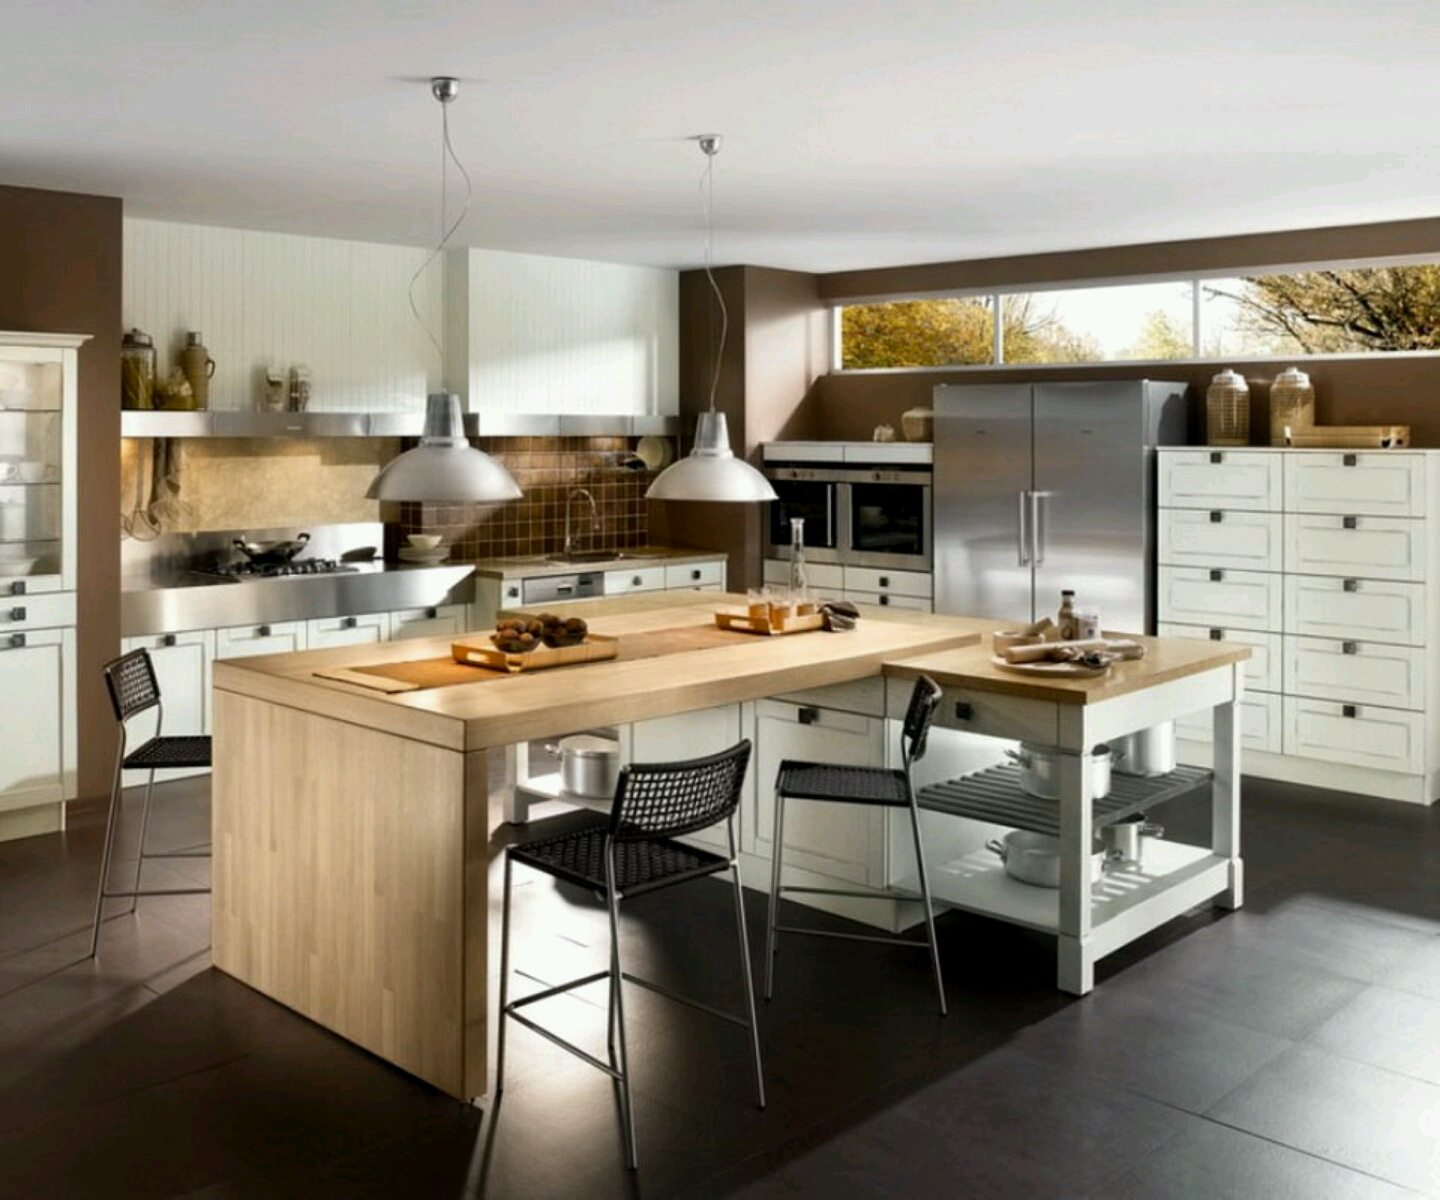 New home designs latest modern kitchen designs ideas for Small contemporary kitchen designs